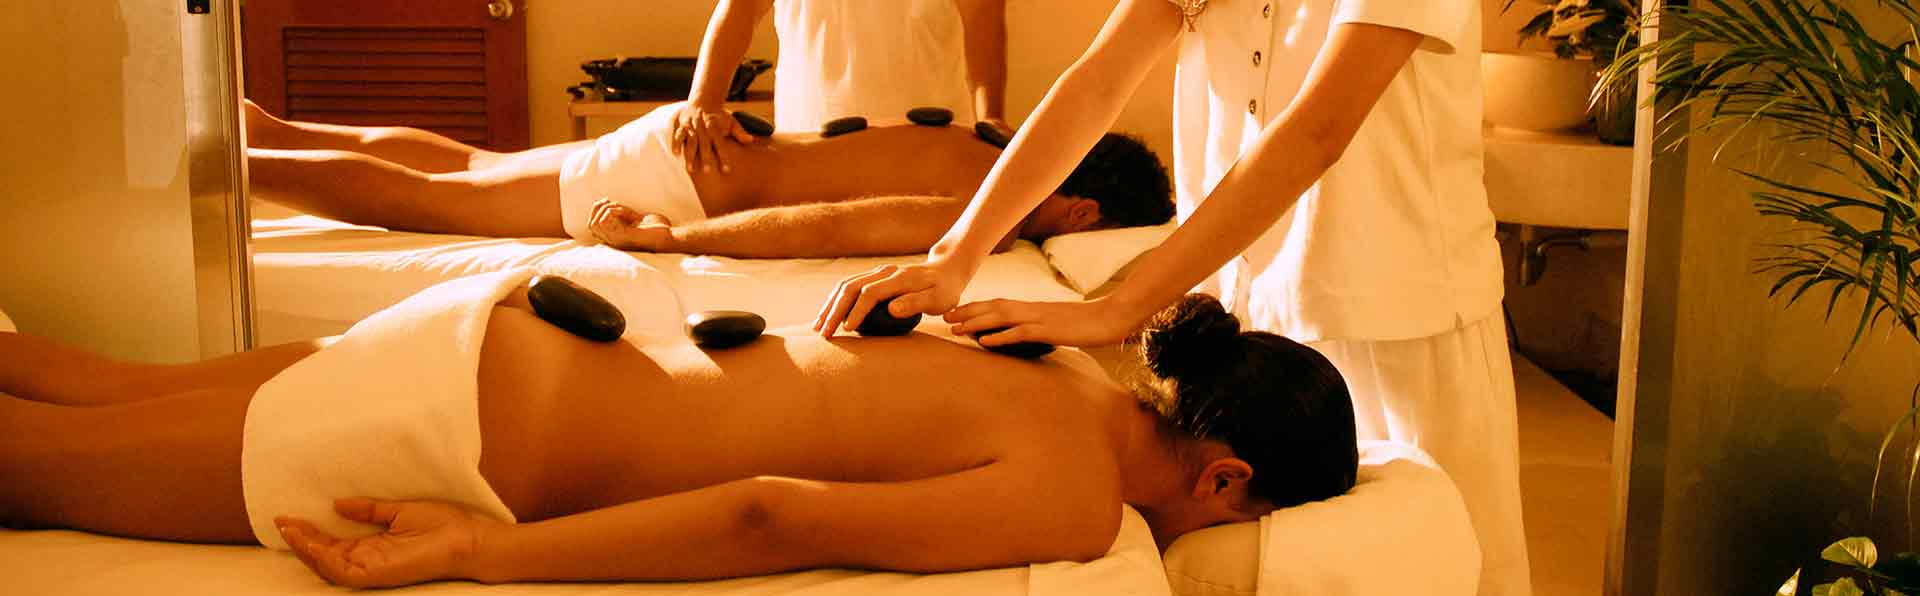 Exotic Spa Massage at Desire Resort Riviera Maya